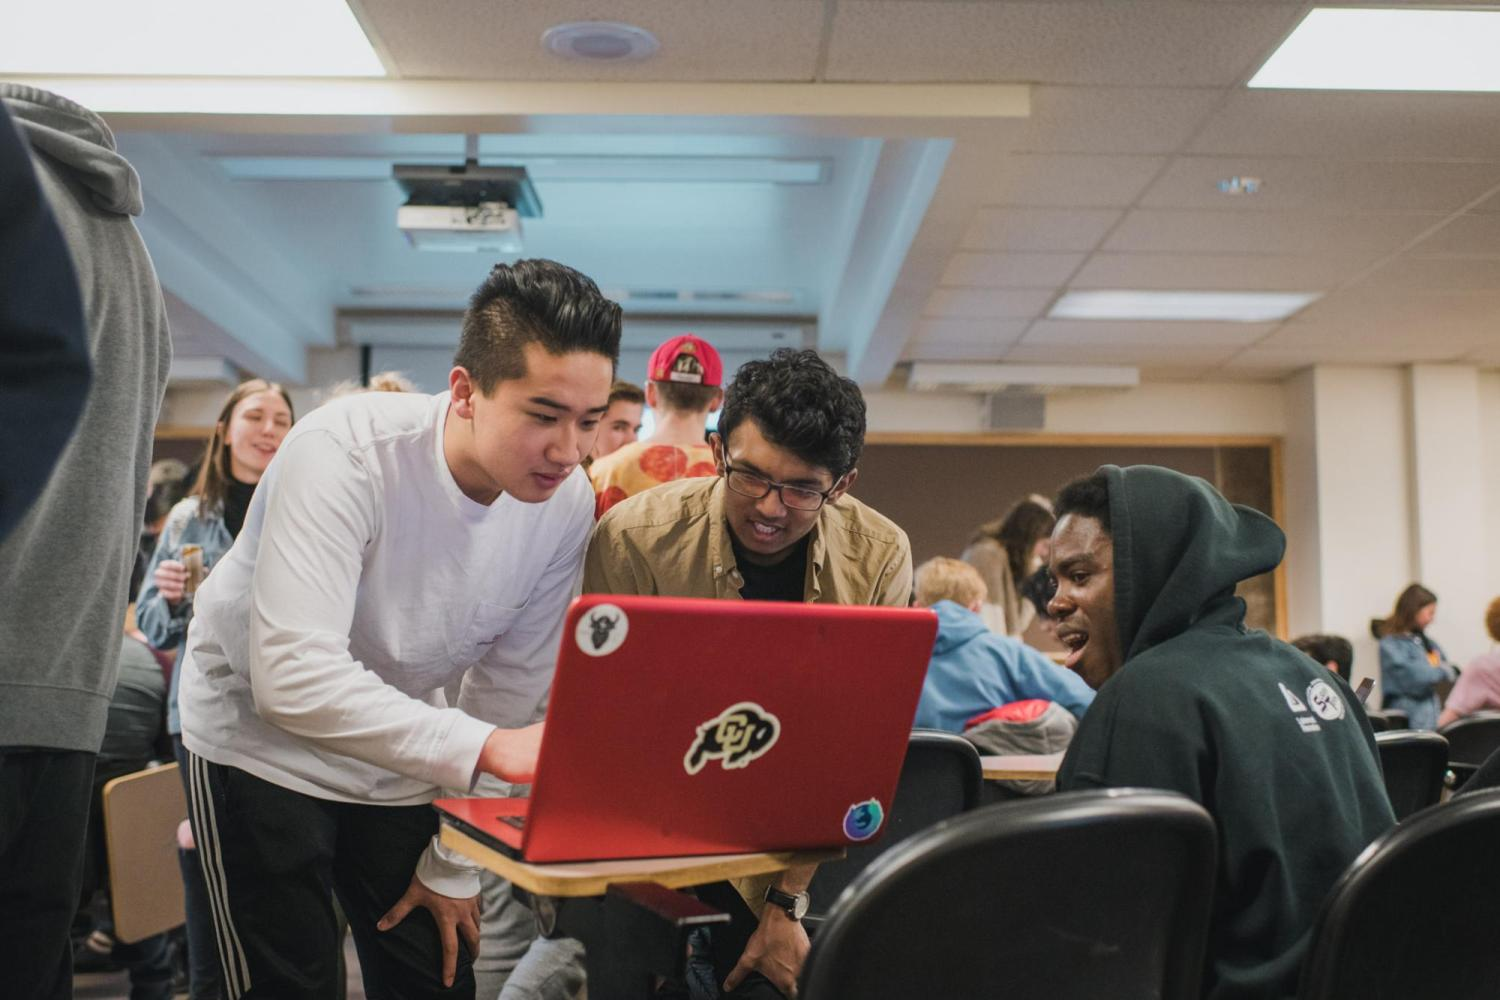 A group of students working together on a computer